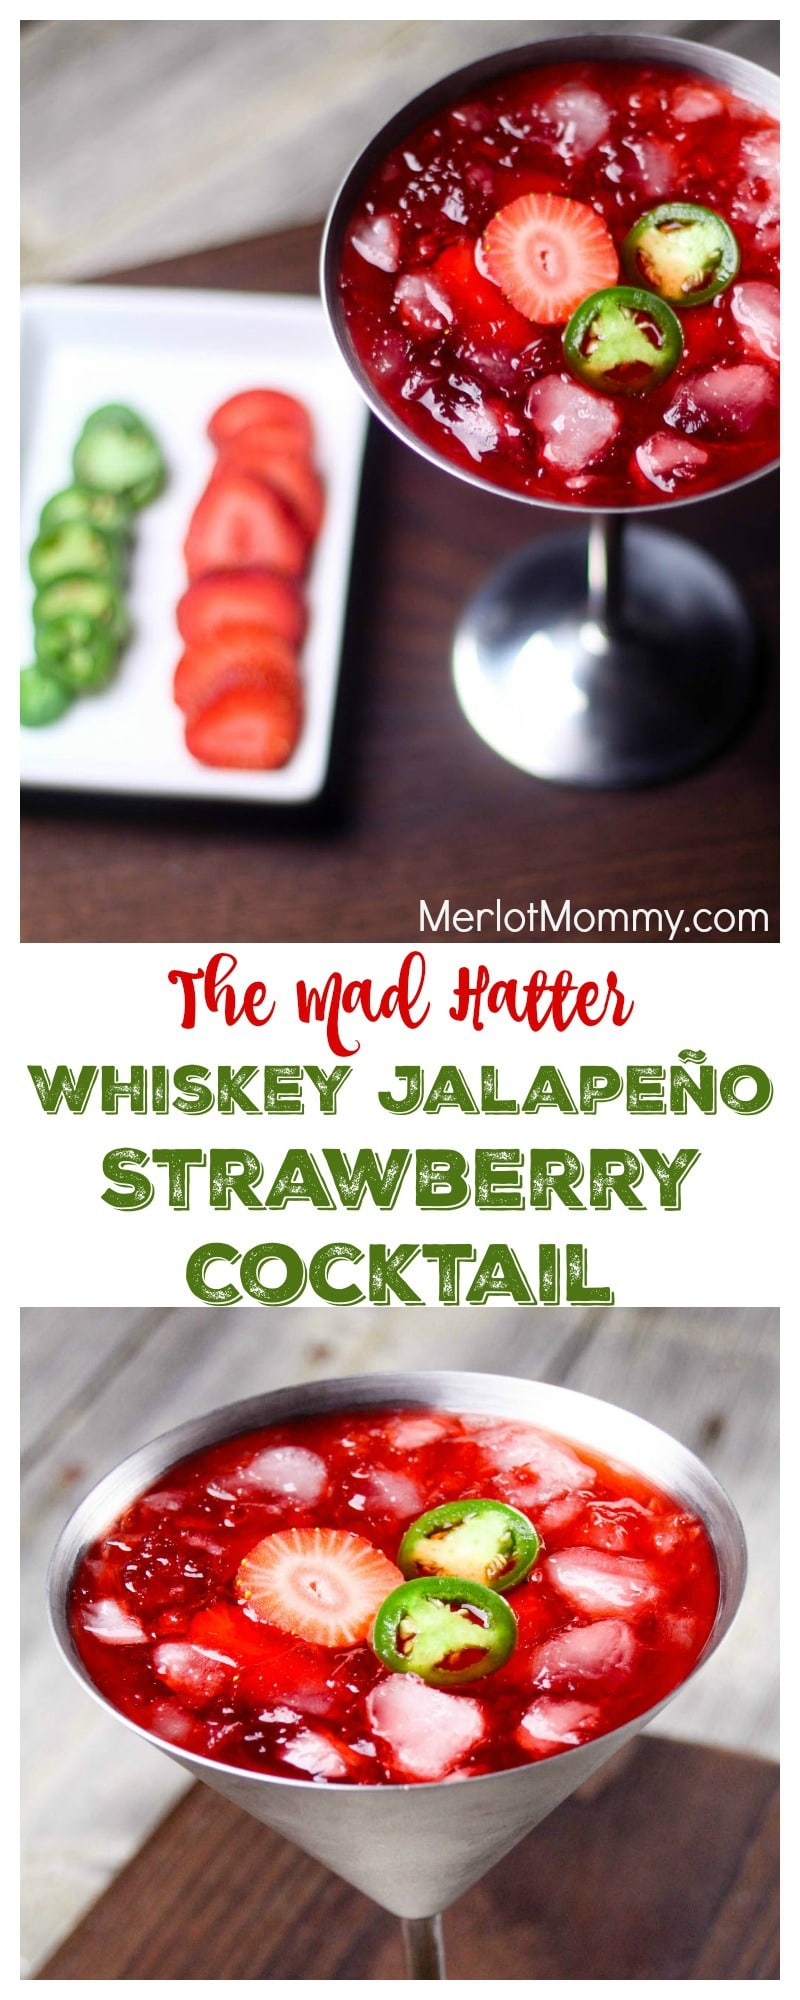 The Mad Hatter: Whiskey Jalapeño Strawberry Cocktail